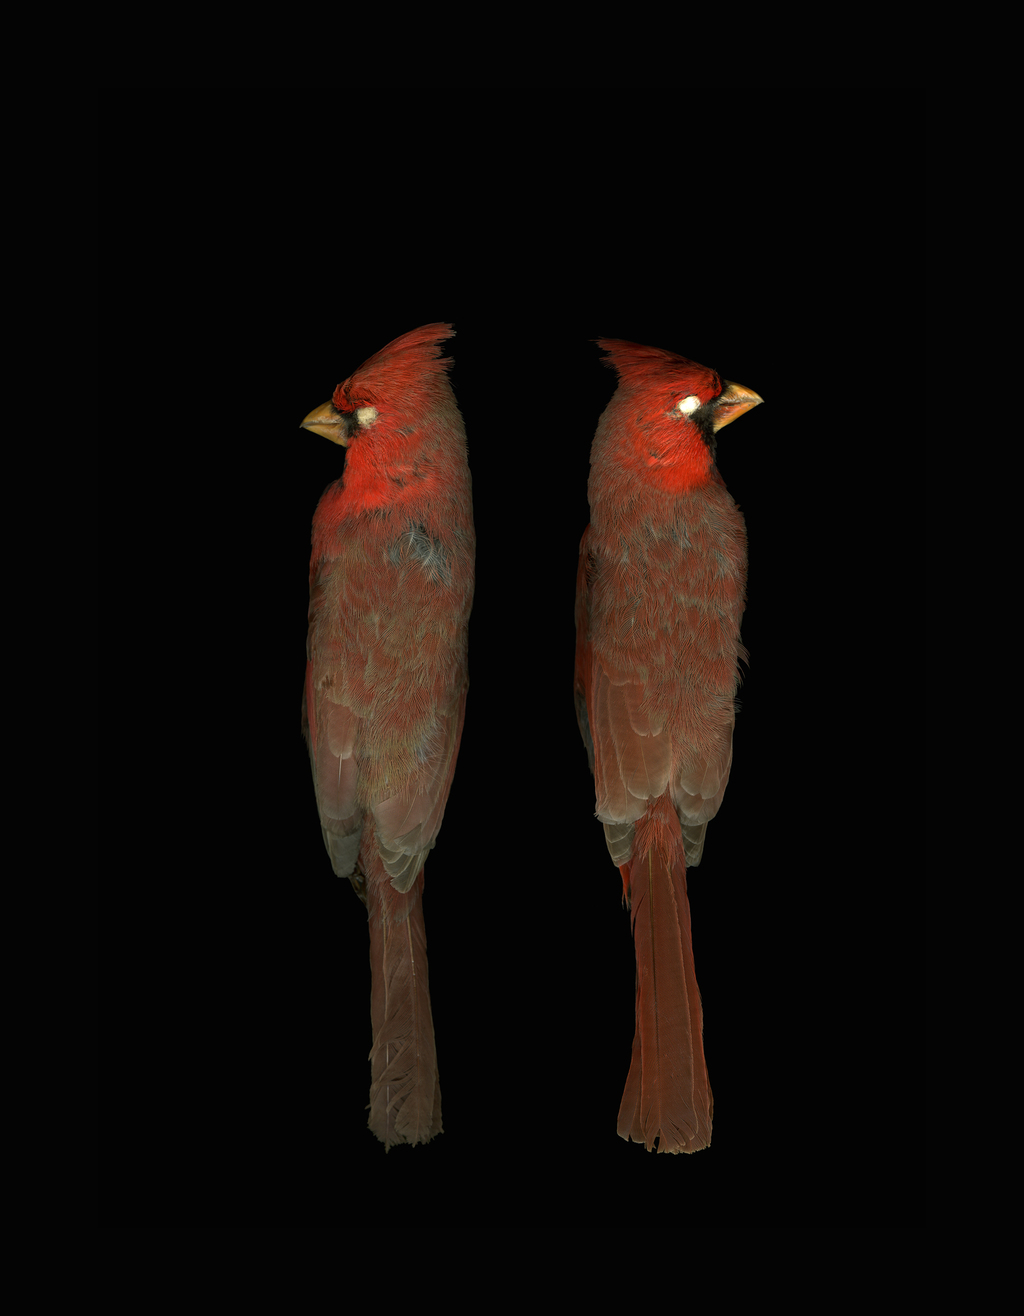 Cardinalis cardinalis, Northern cardinal, North Carolina Museum of Natural Sciences, 2007